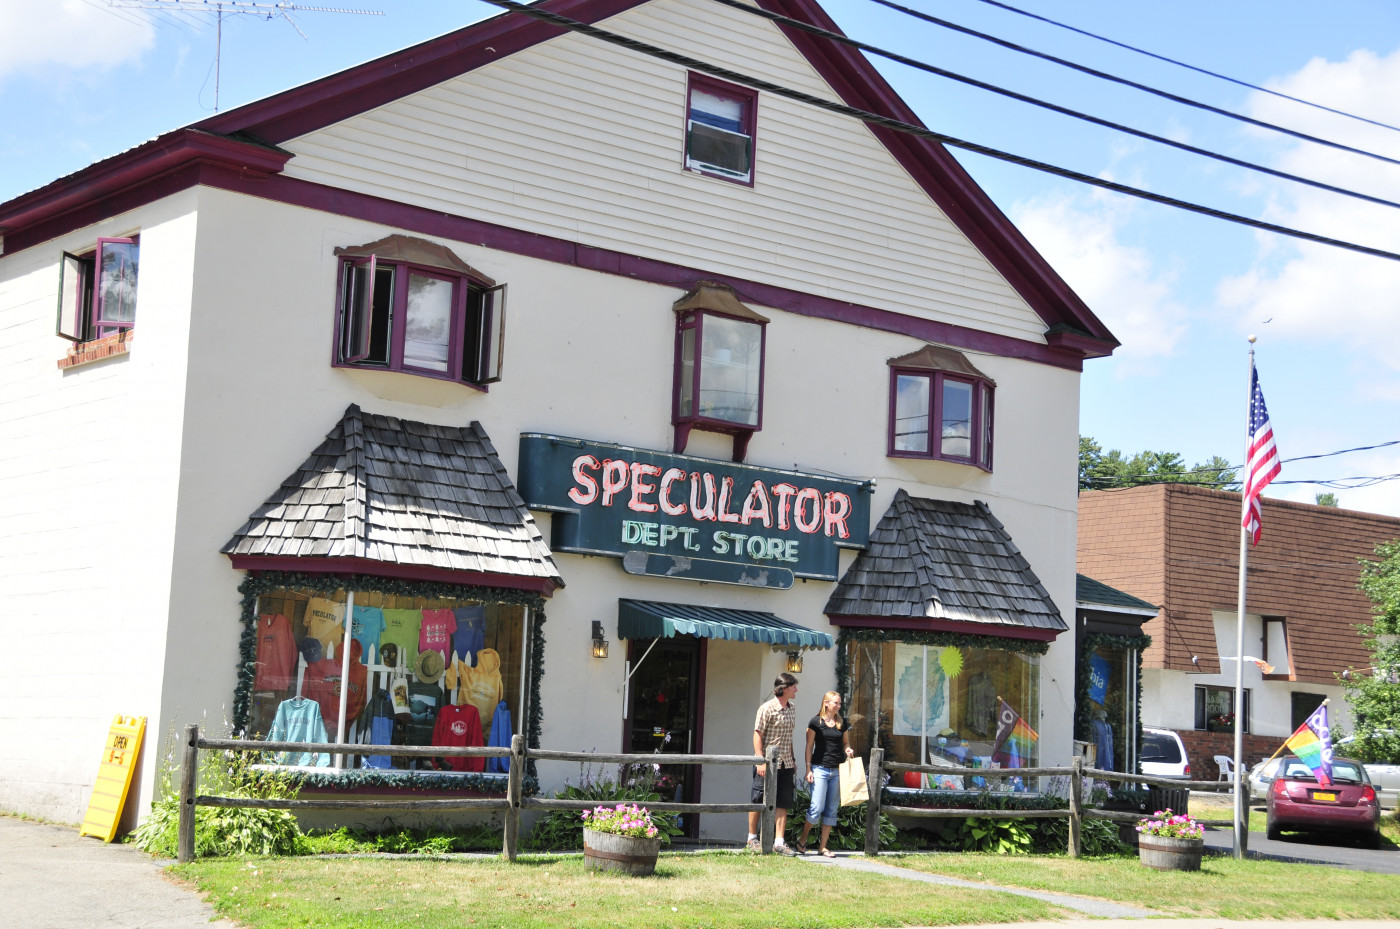 Speculator Department Store Shopping